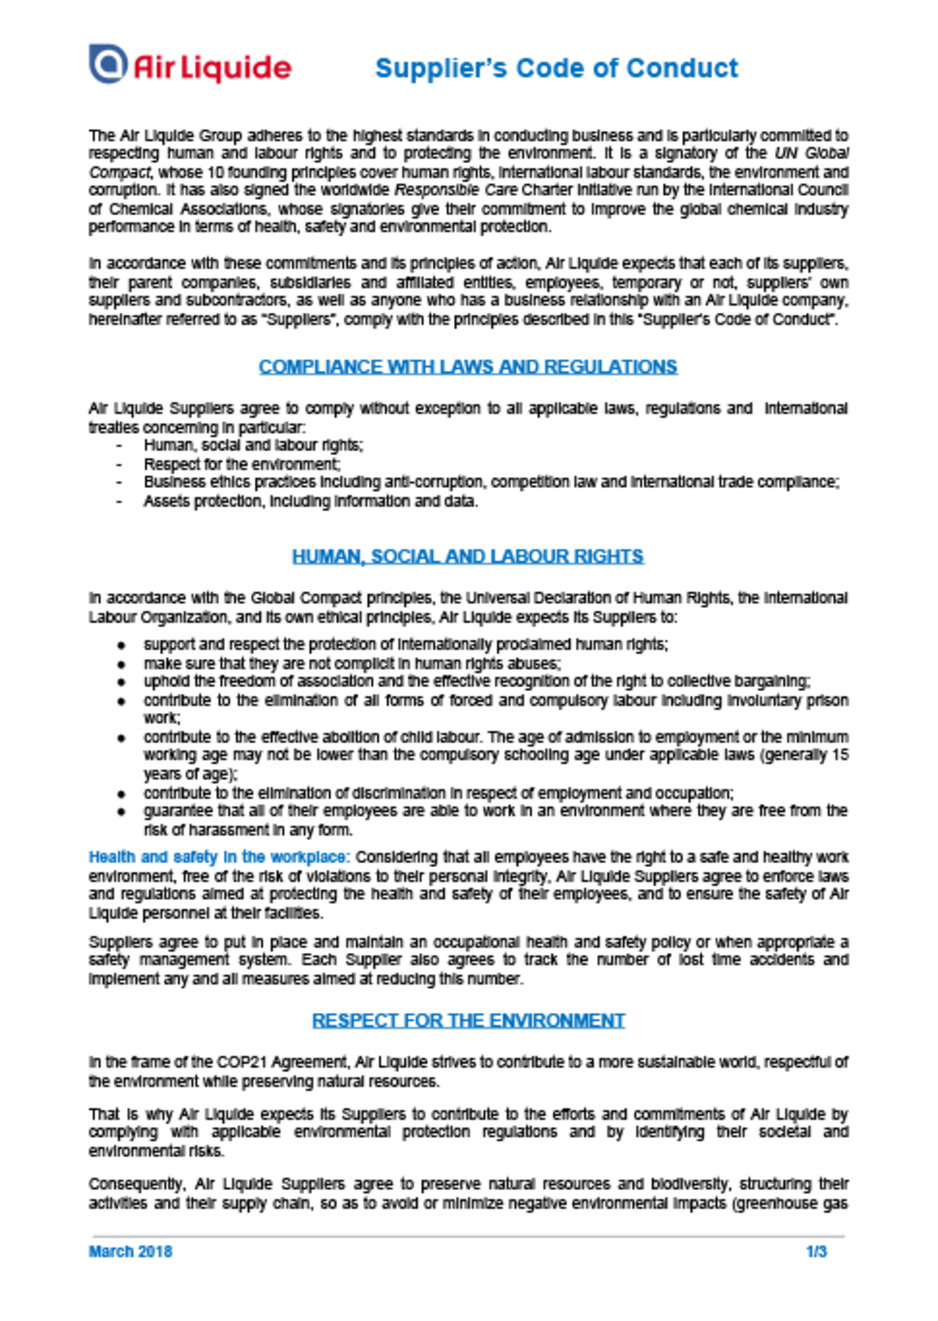 Air Liquide Supplier's Code of Conduct cover